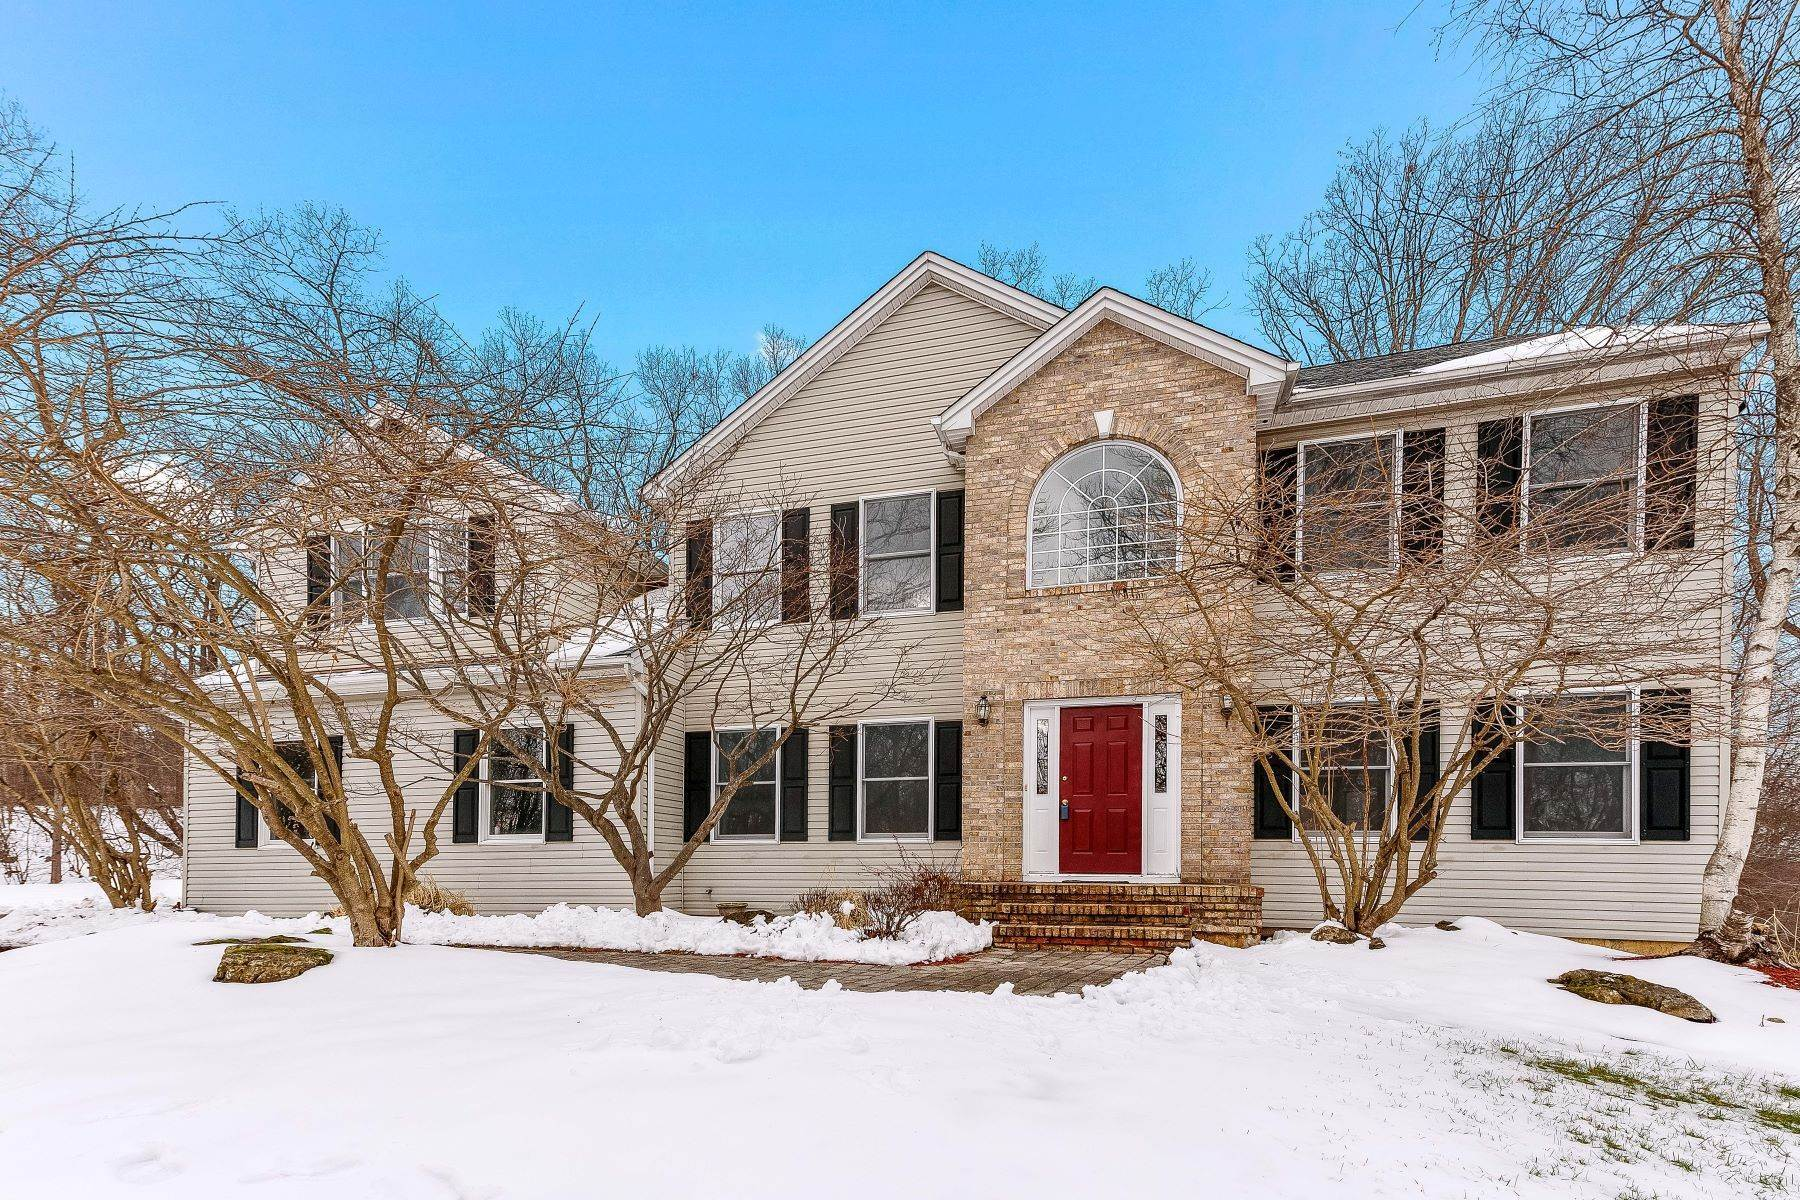 Single Family Homes for Sale at Independence Twp Four Bedroom Colonial 21 Ridge Lane, Hackettstown, New Jersey 07840 United States